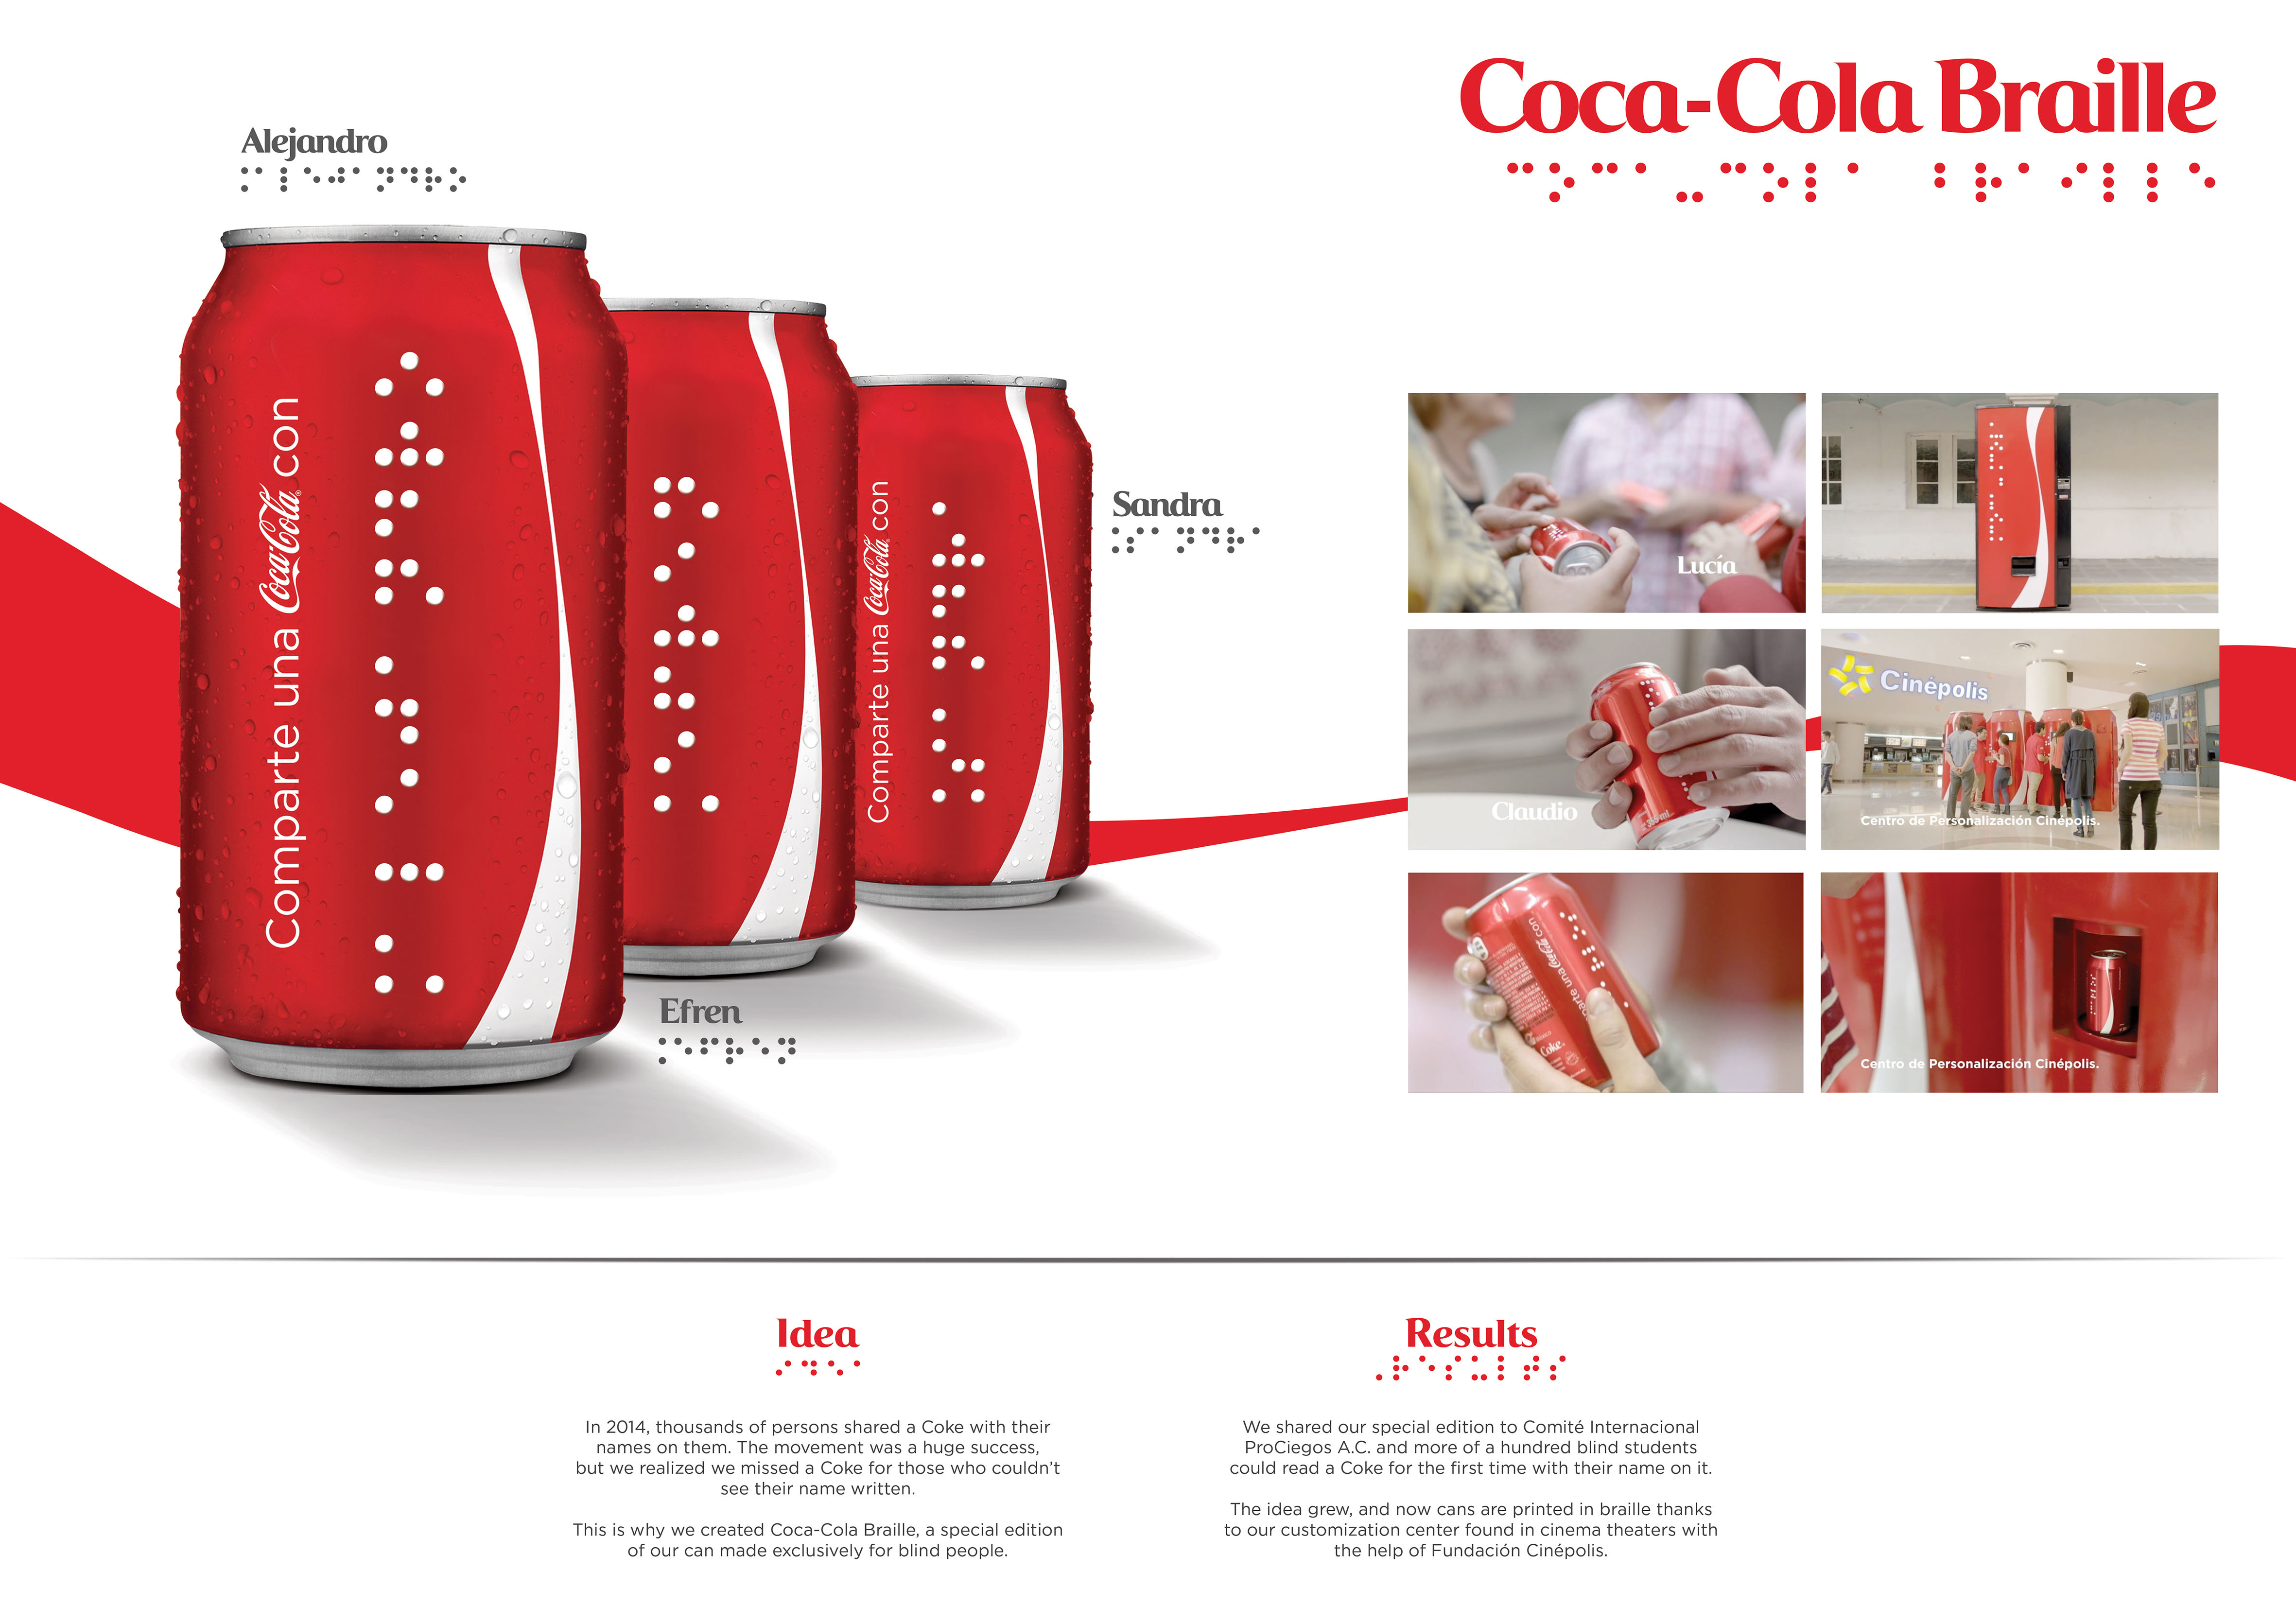 coca-cola-coca-cola-braille-media2-promo-design-371996-adeevee